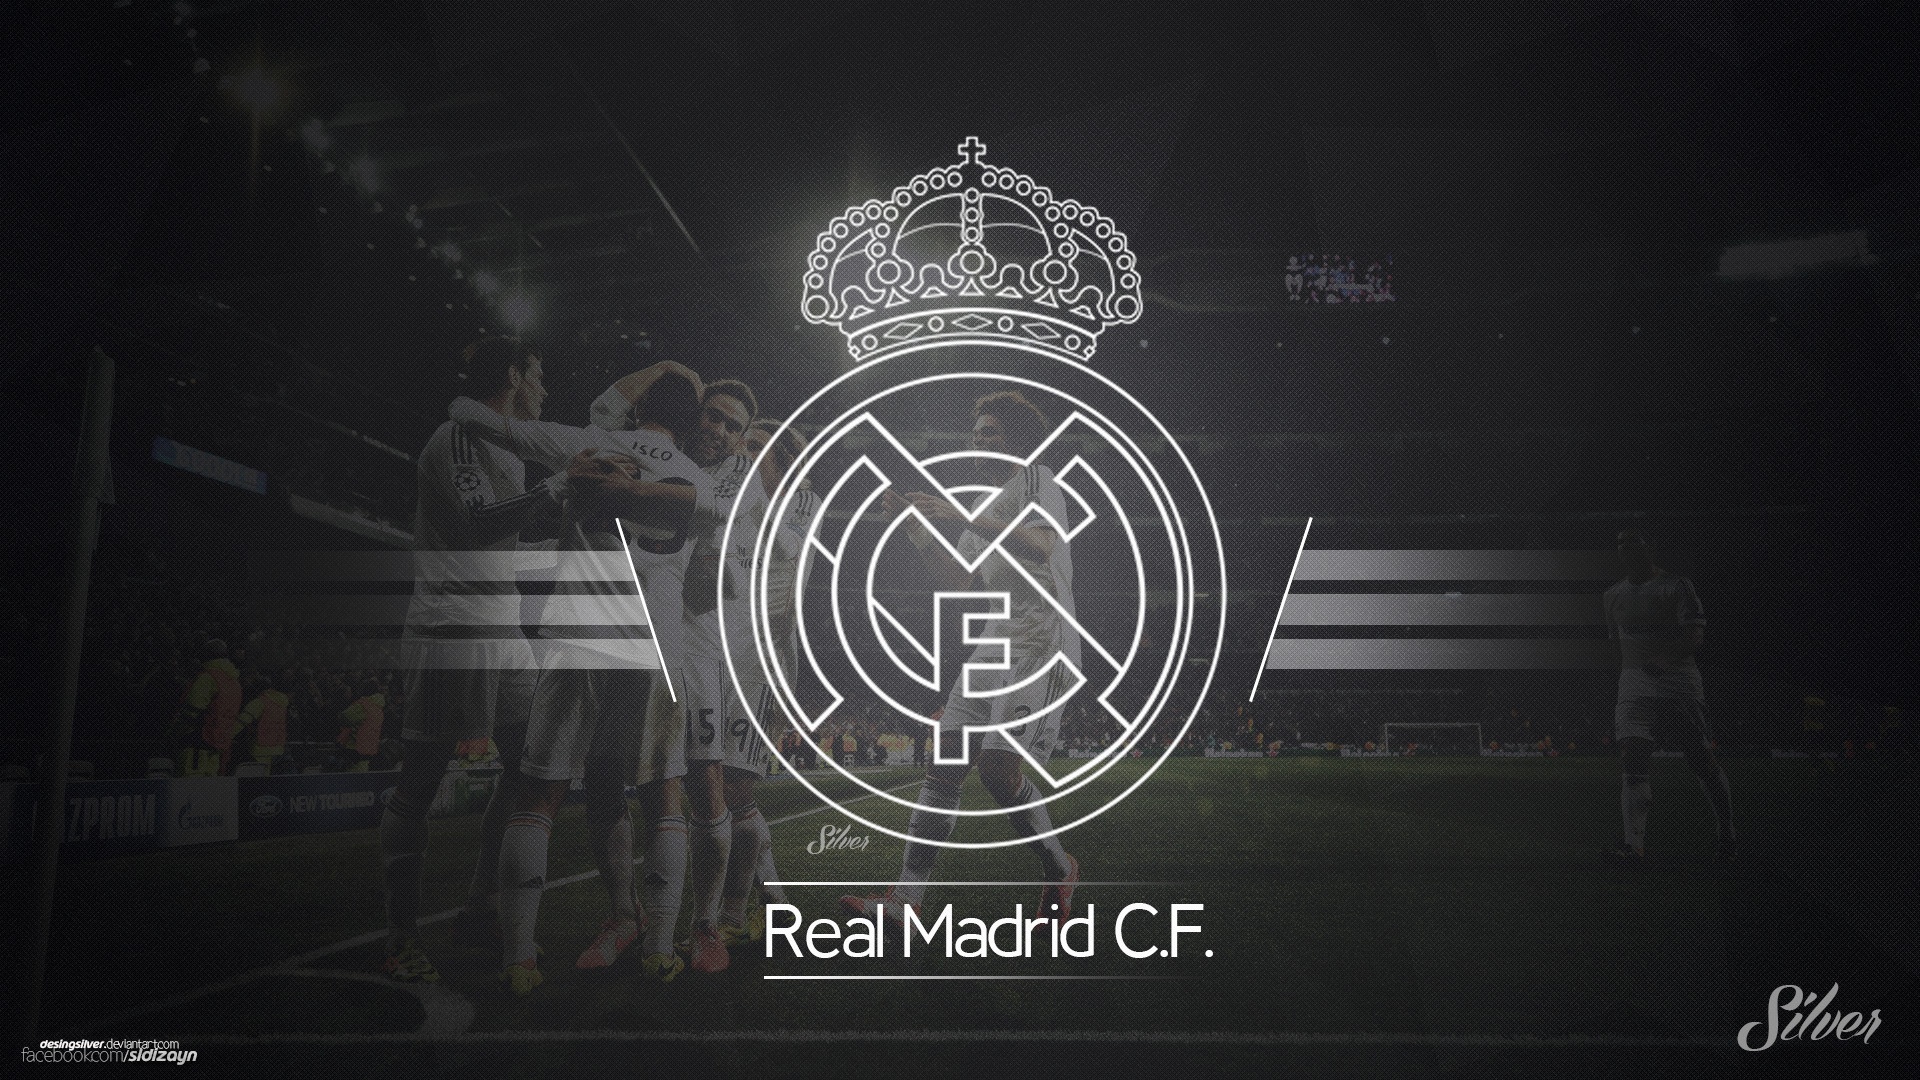 Wallpaper real madrid for windows xp - 1920x1080 Newest Real Madrid Wallpapers High Definition Wallpapers 1080p Free Download You Can Also Upload And